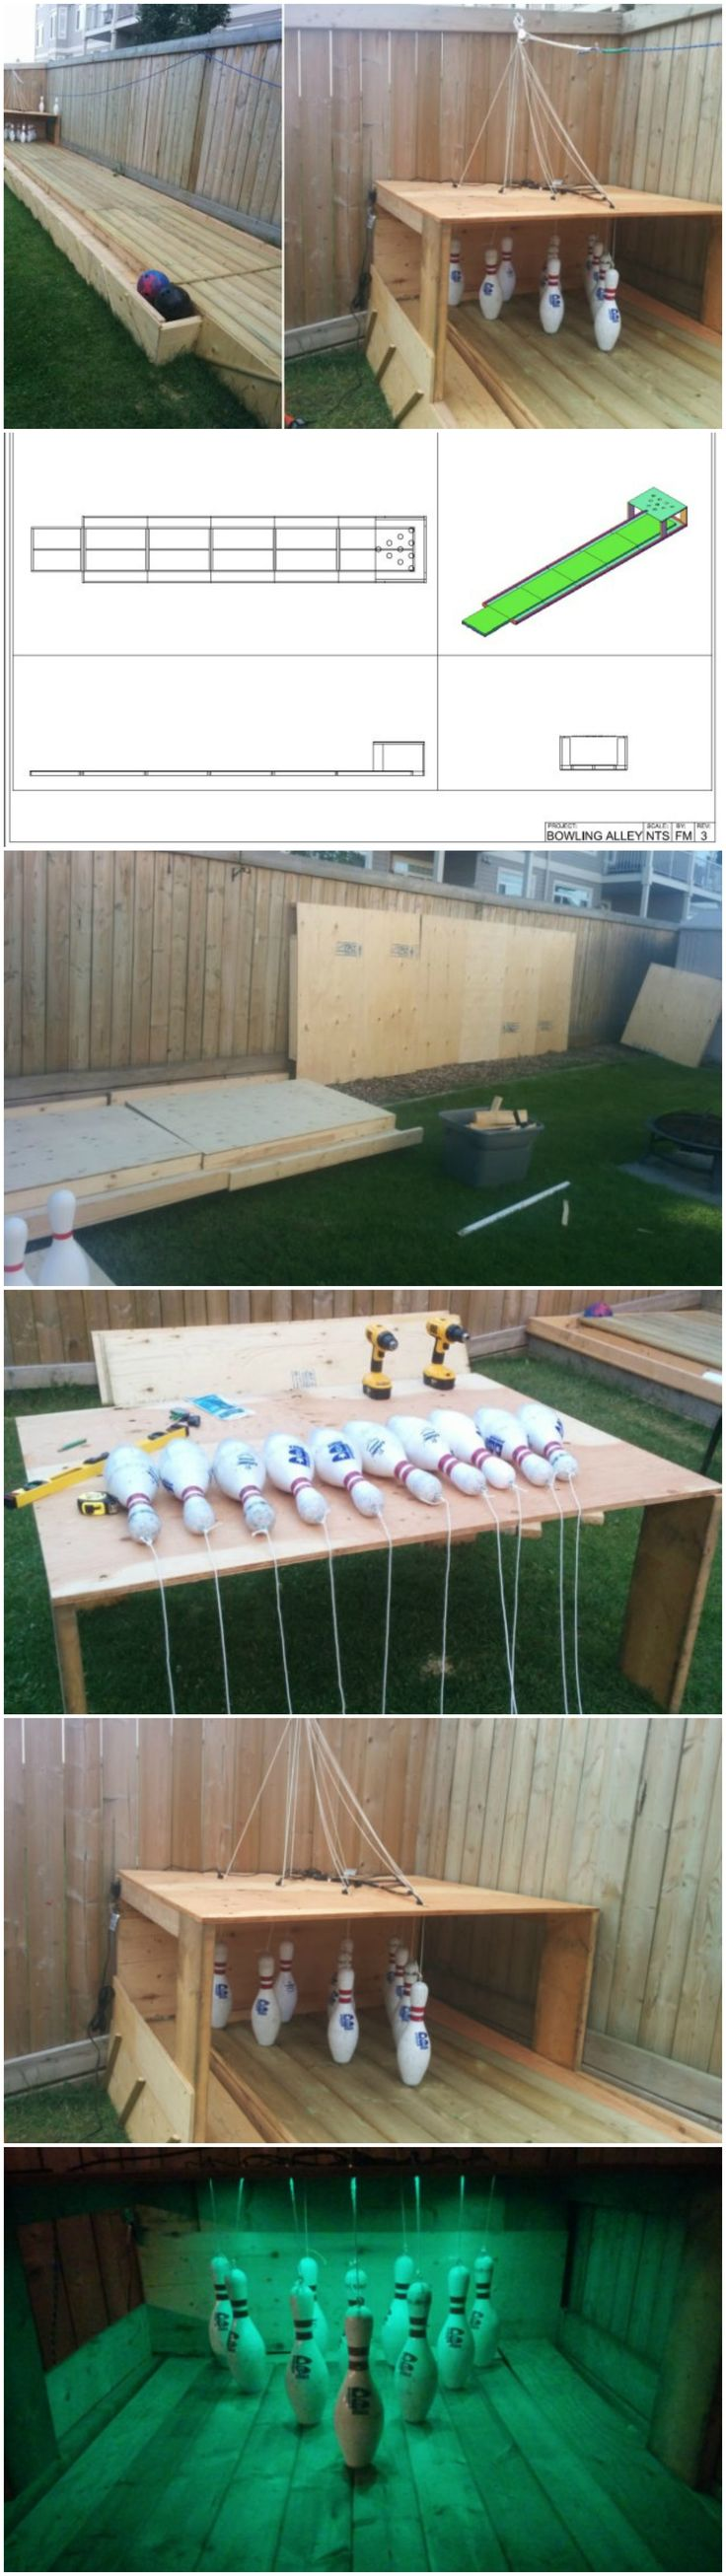 DIY Backyard Bowling Alley